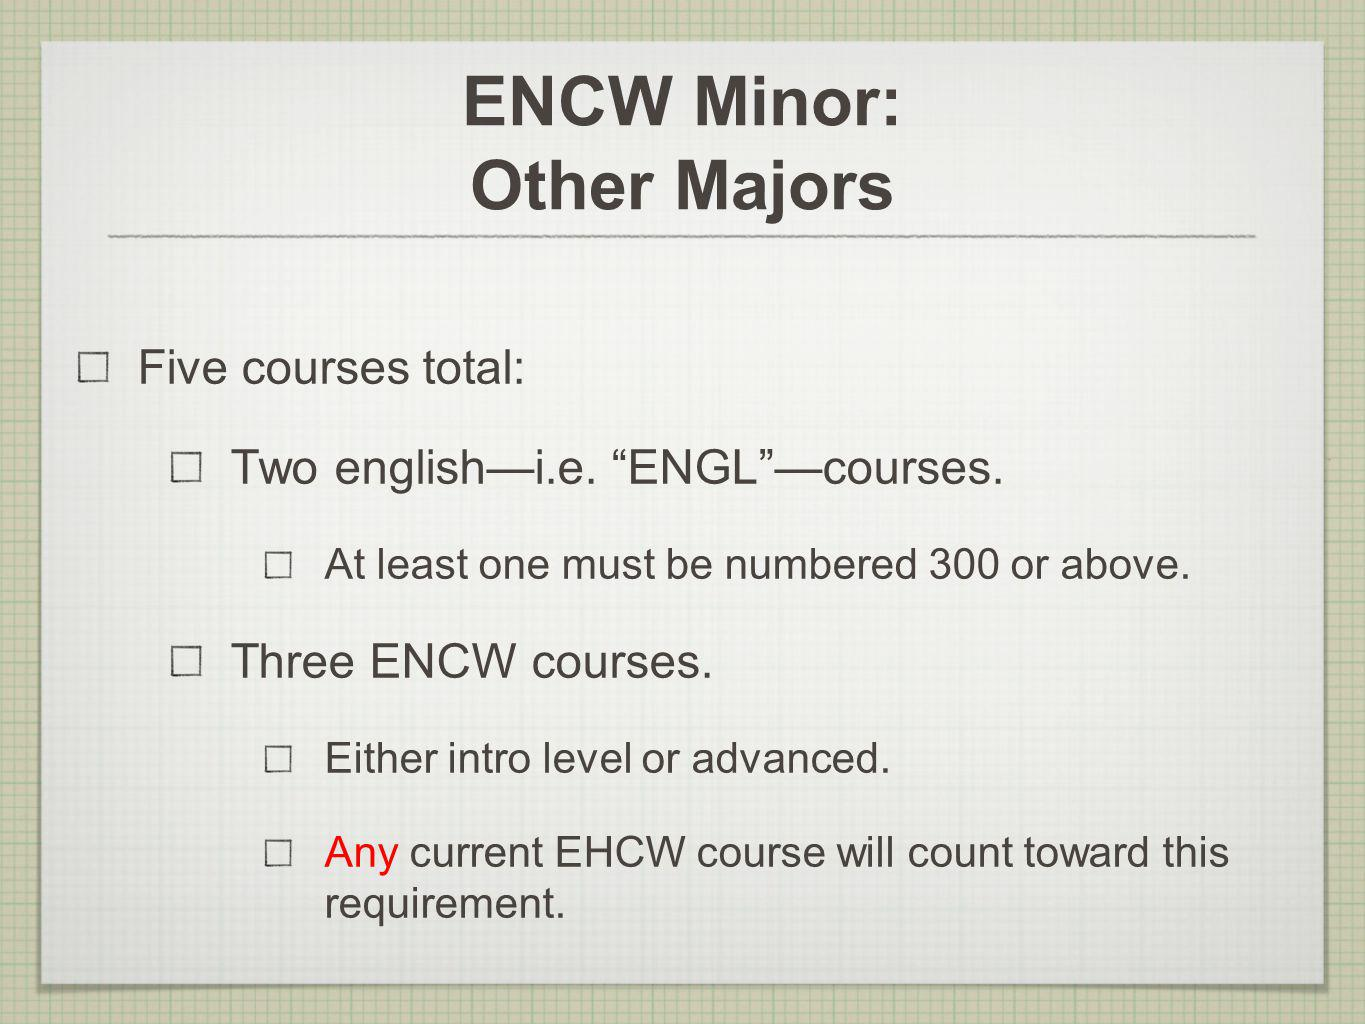 ENCW Minor: Other Majors Five courses total: Two englishi.e. ENGLcourses. At least one must be numbered 300 or above. Three ENCW courses. Either intro